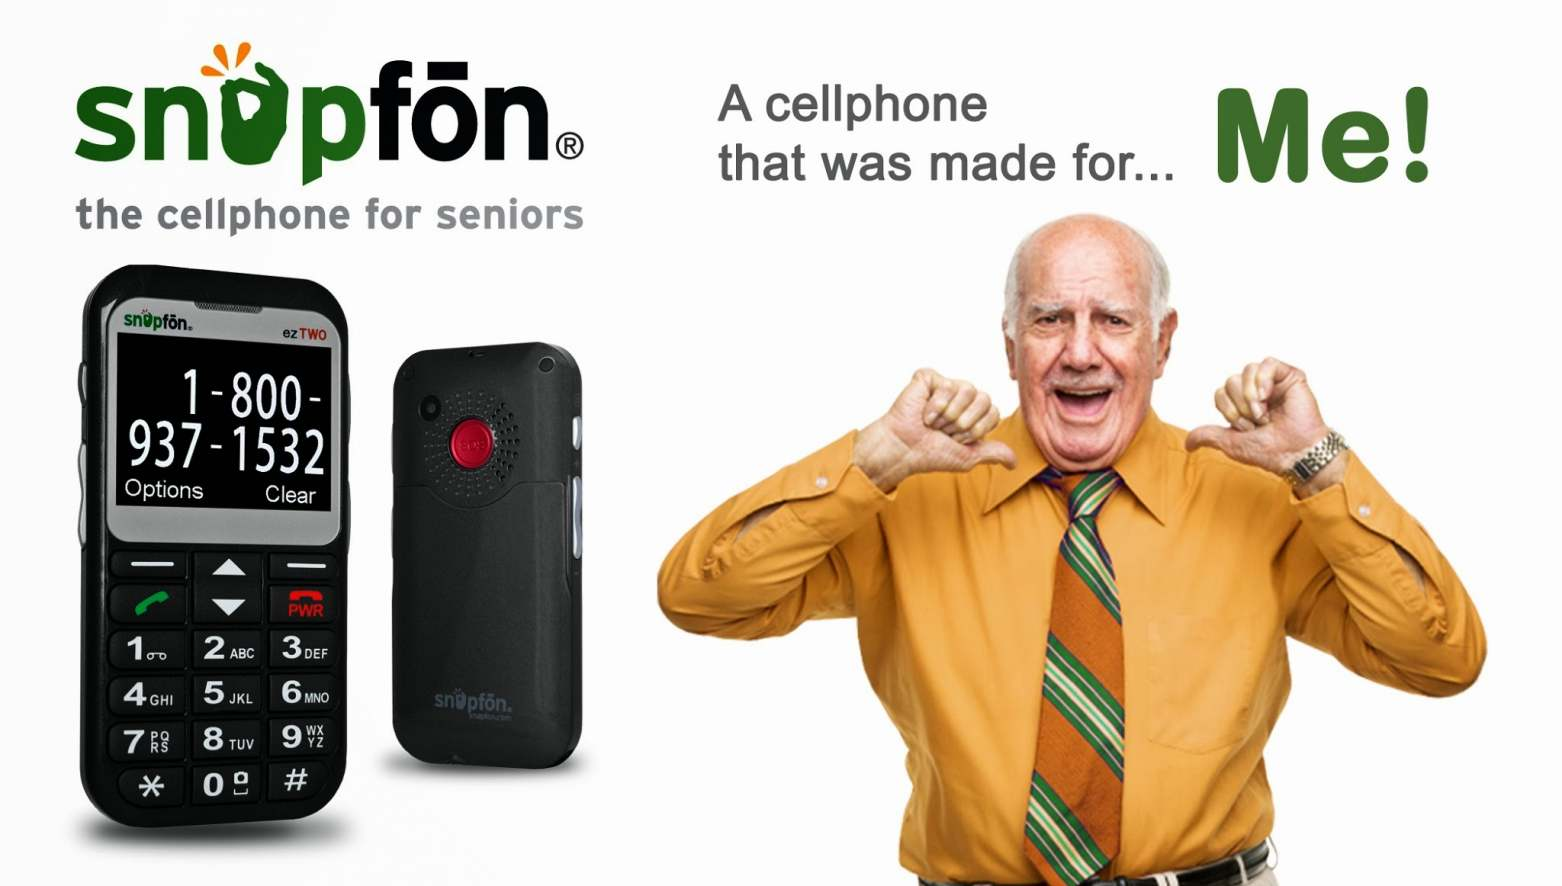 Snapfon - Best Cell Phones for Seniors with Plans